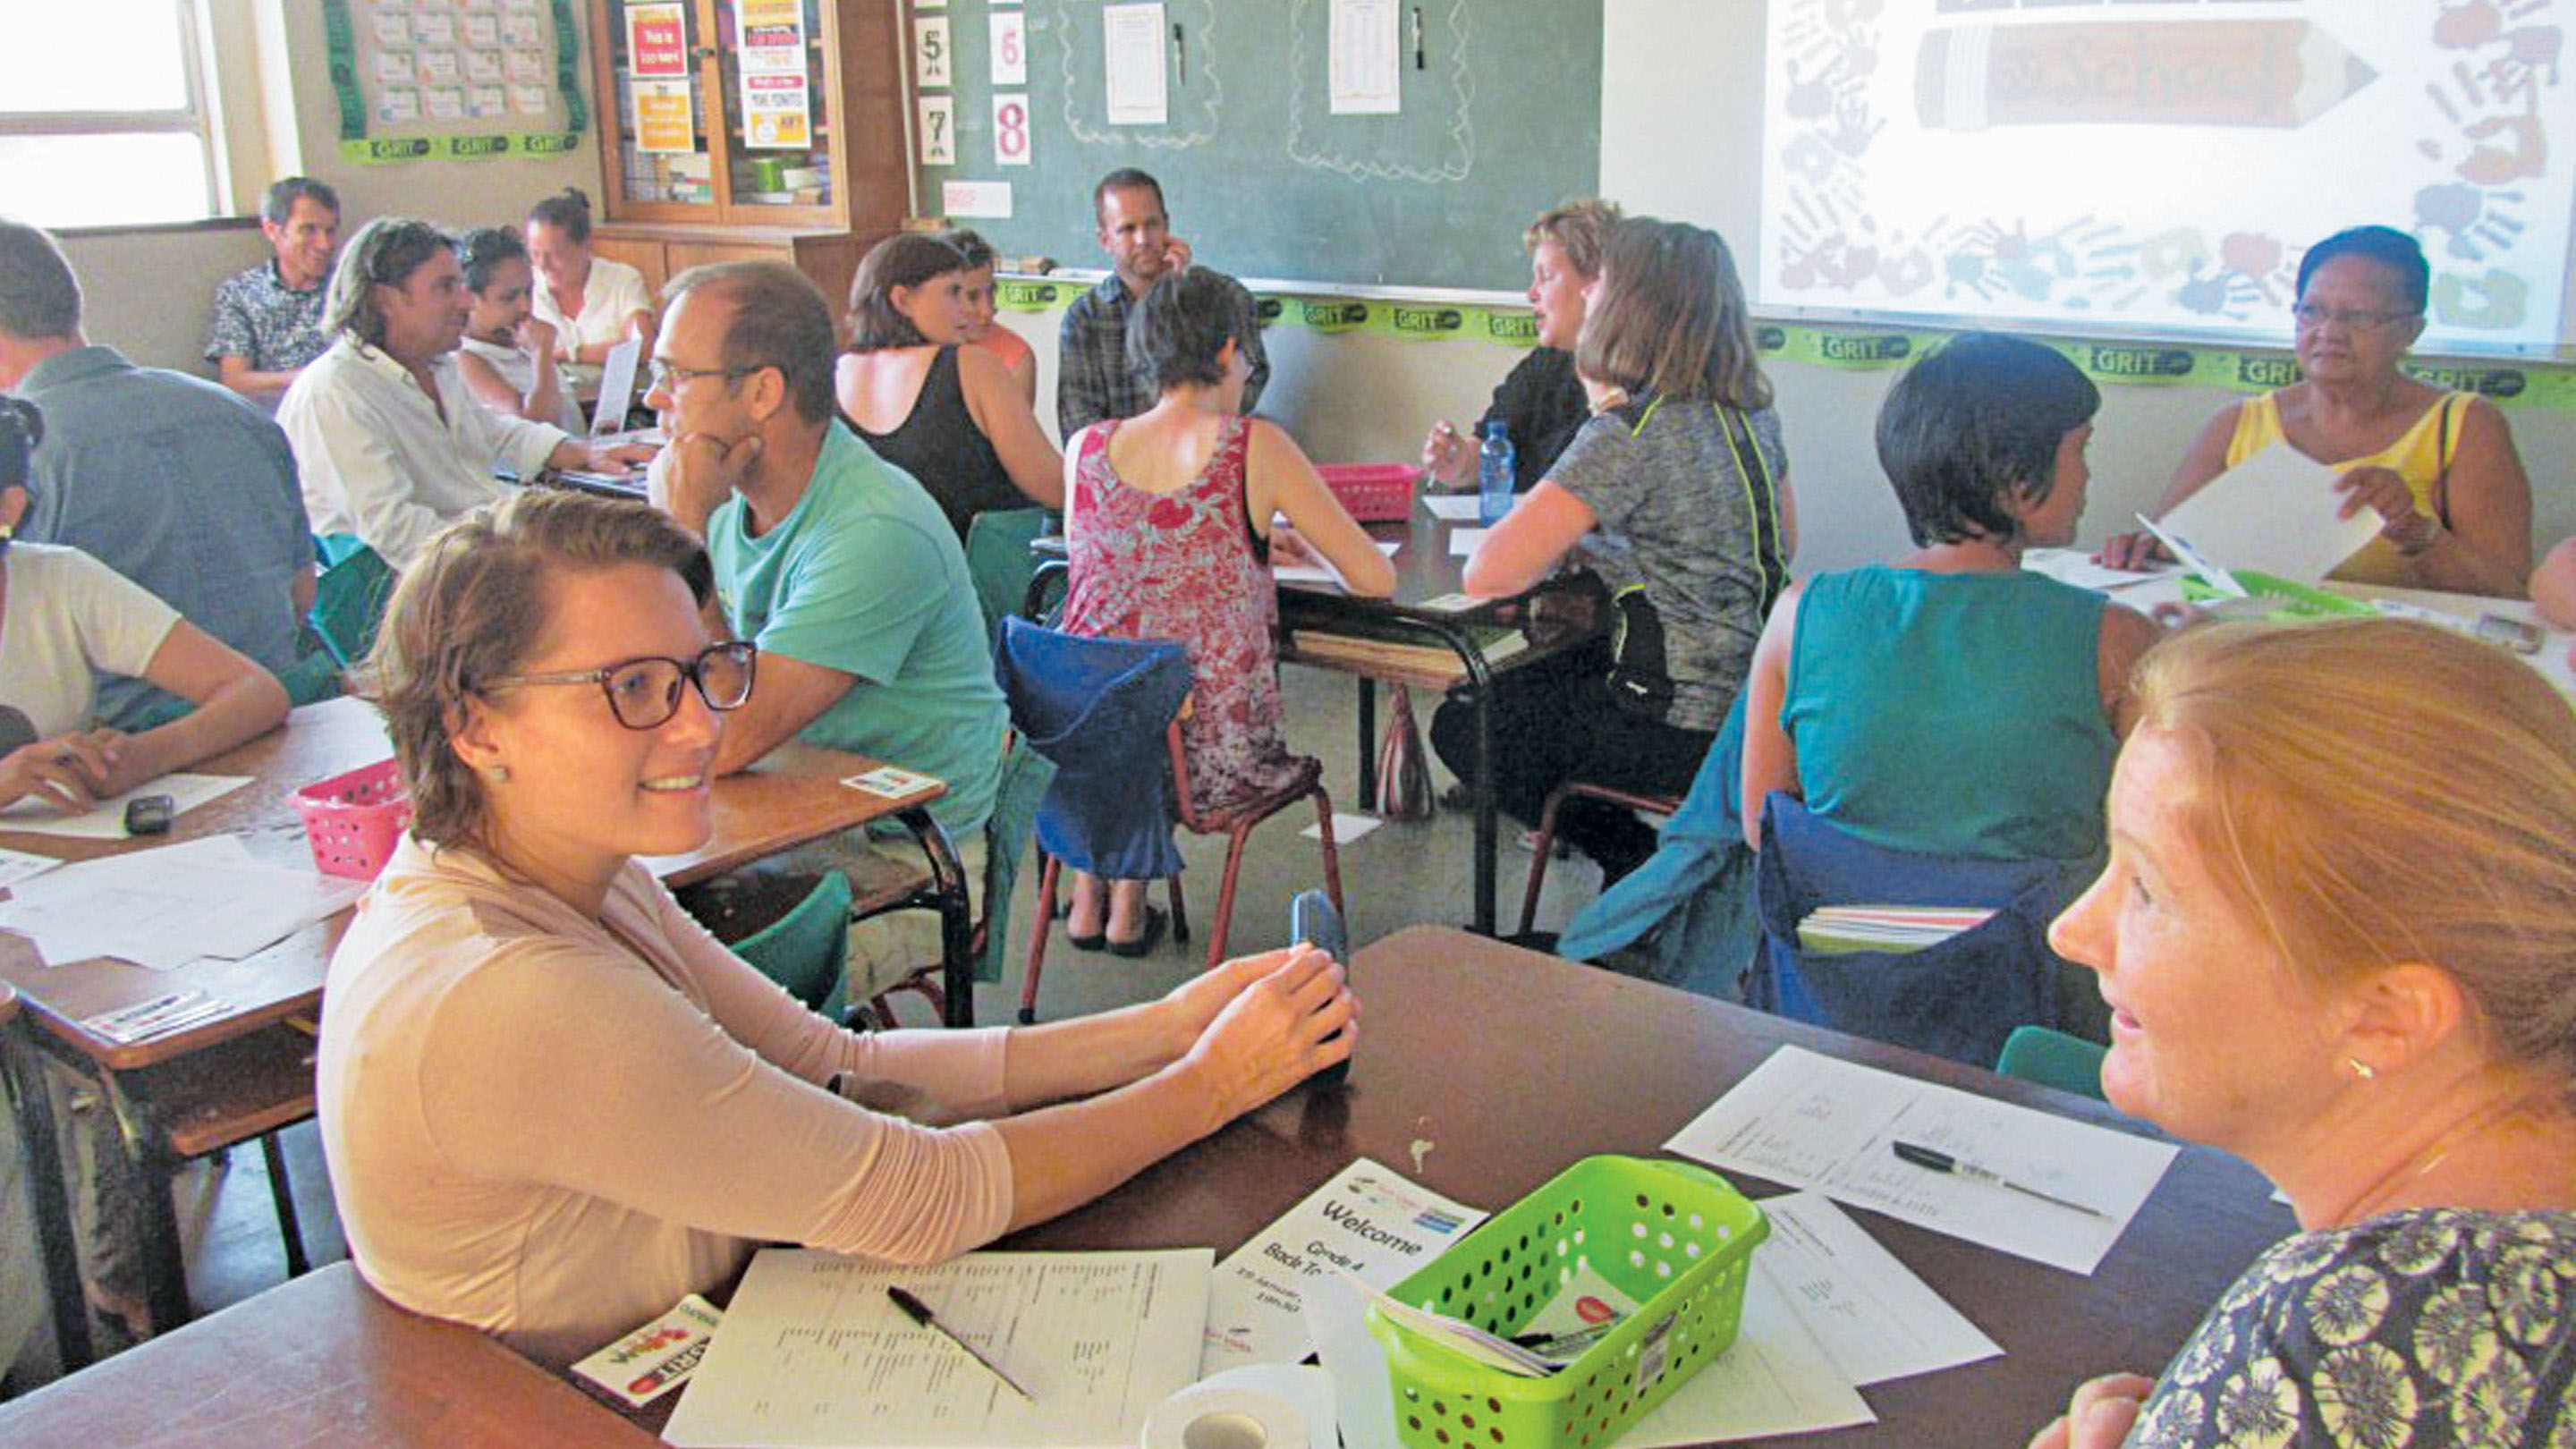 A classroom filled with teachers talking to each other while seated